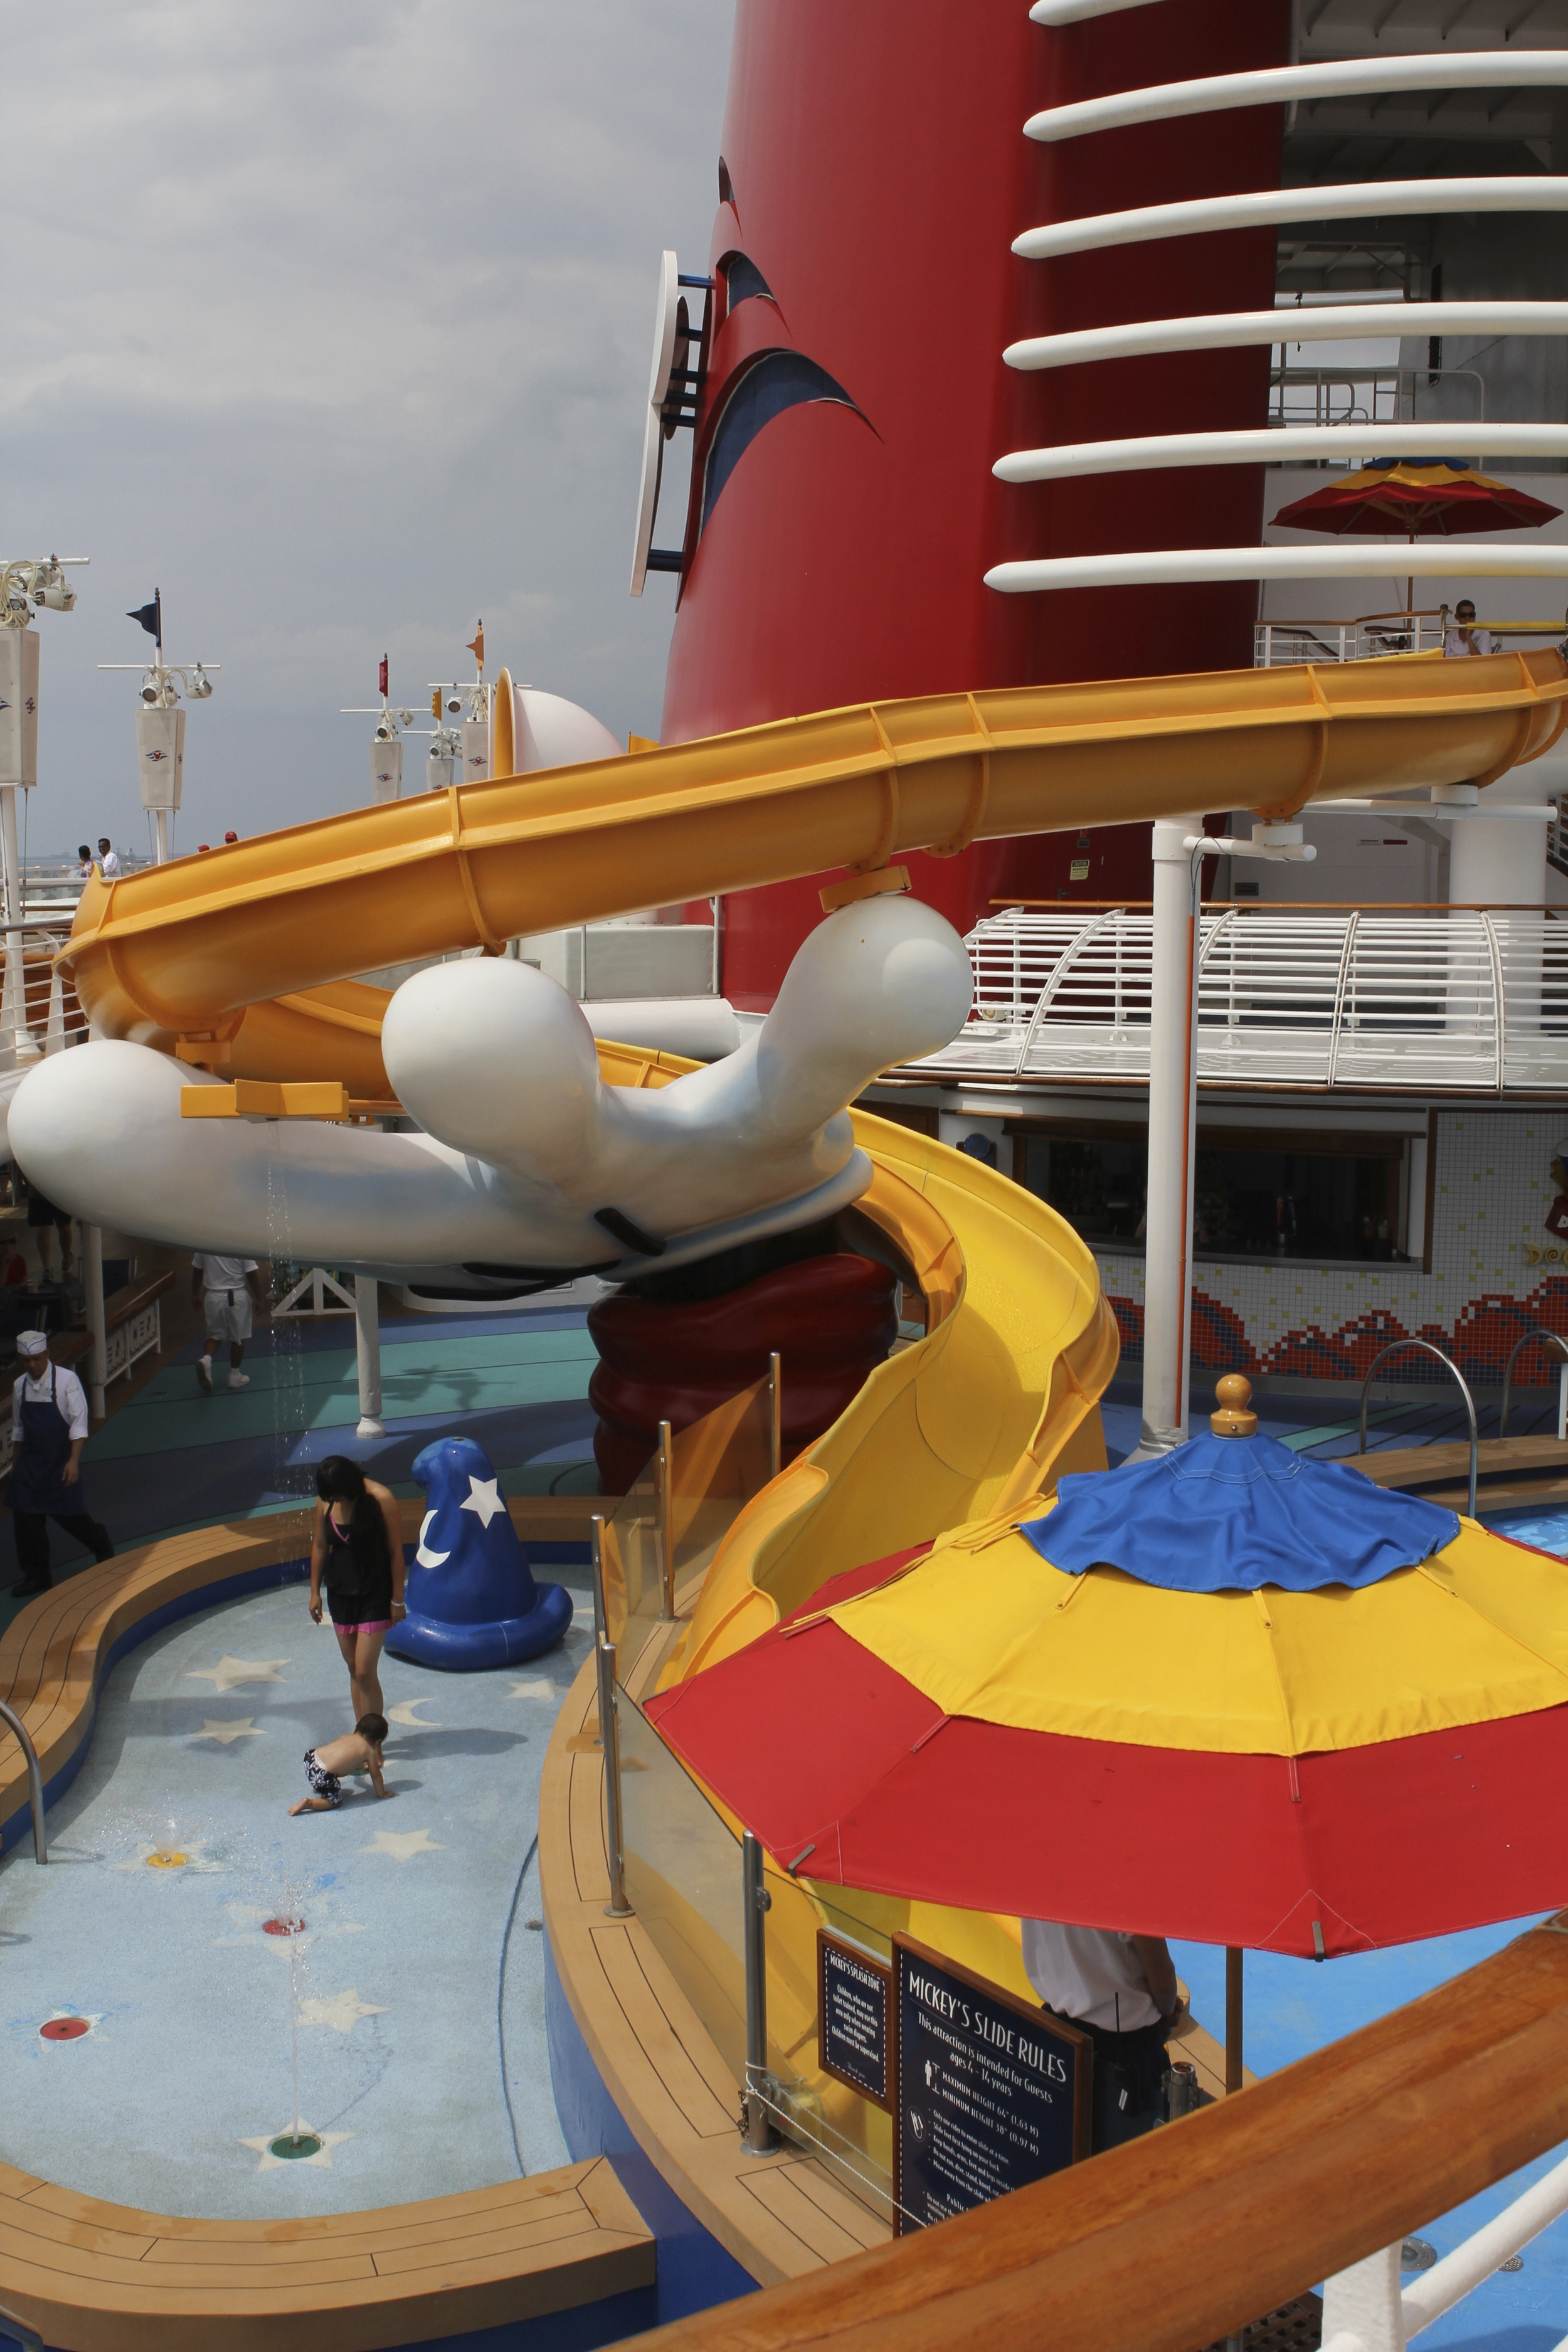 The water slide at Mickey's Pool